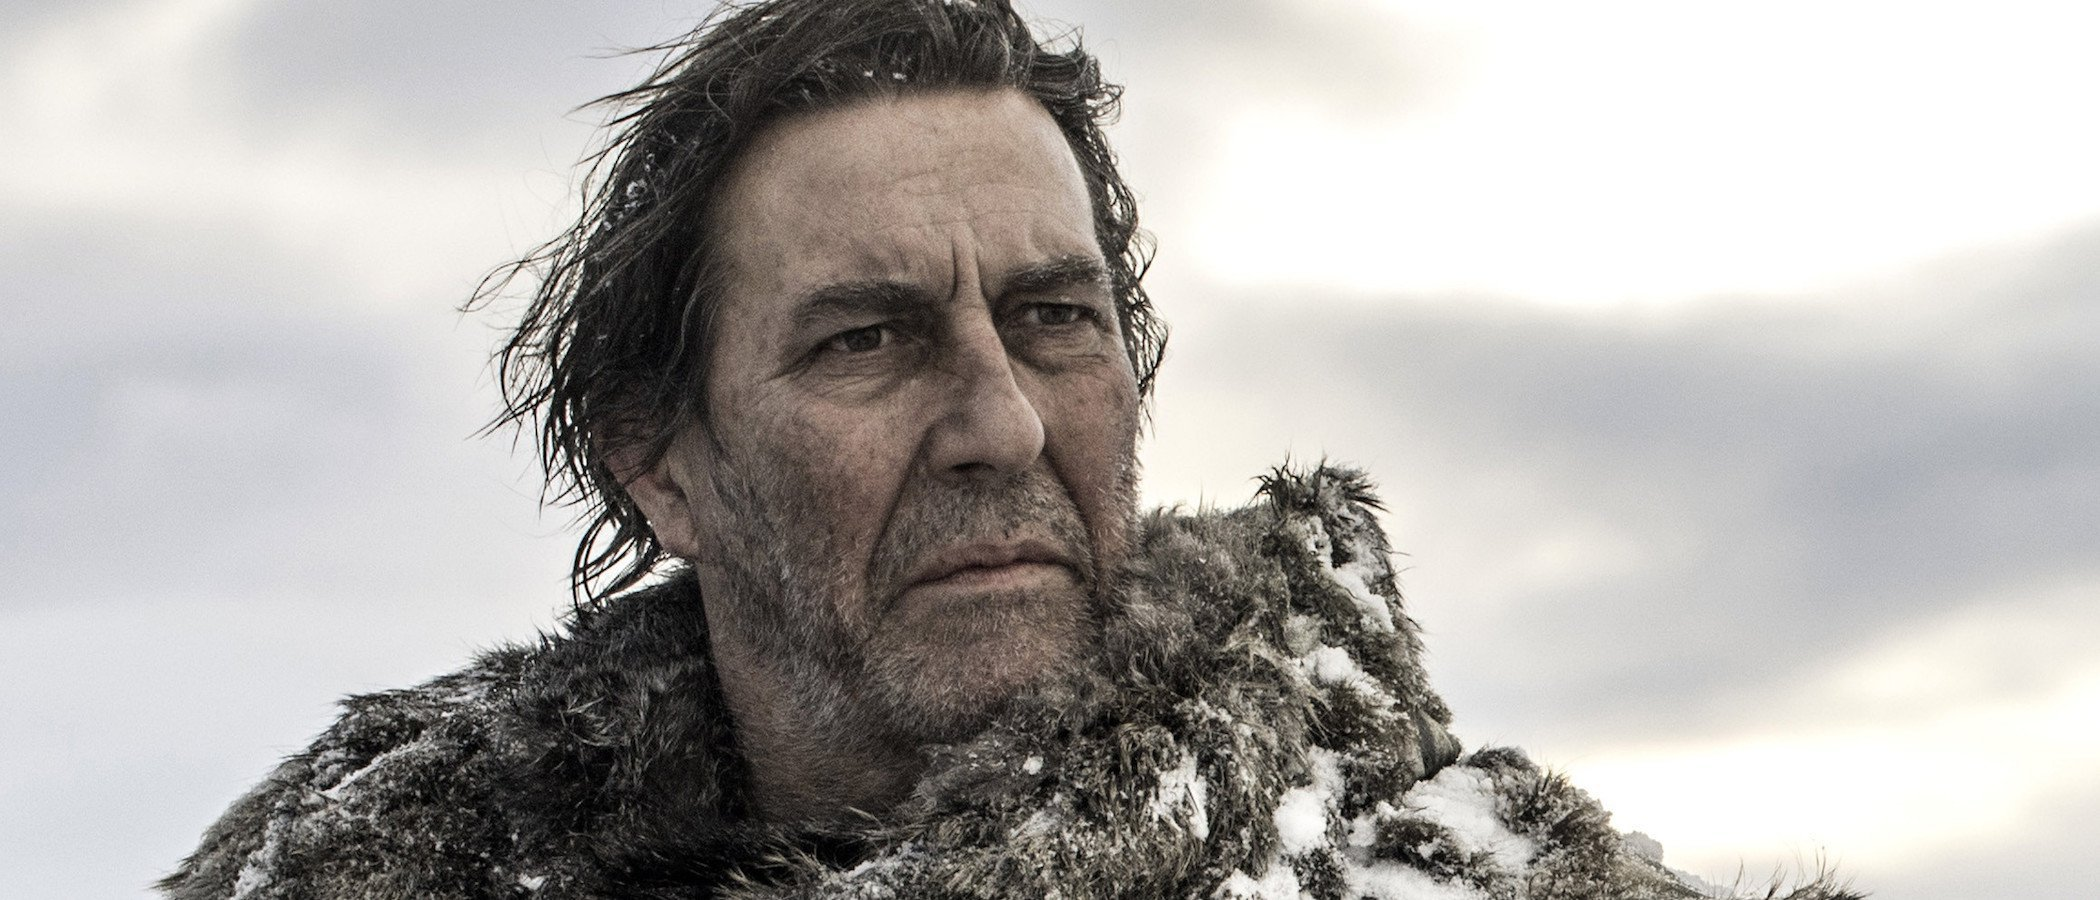 justice-league-ciaran-hinds-mance-rayder-game-of-thrones